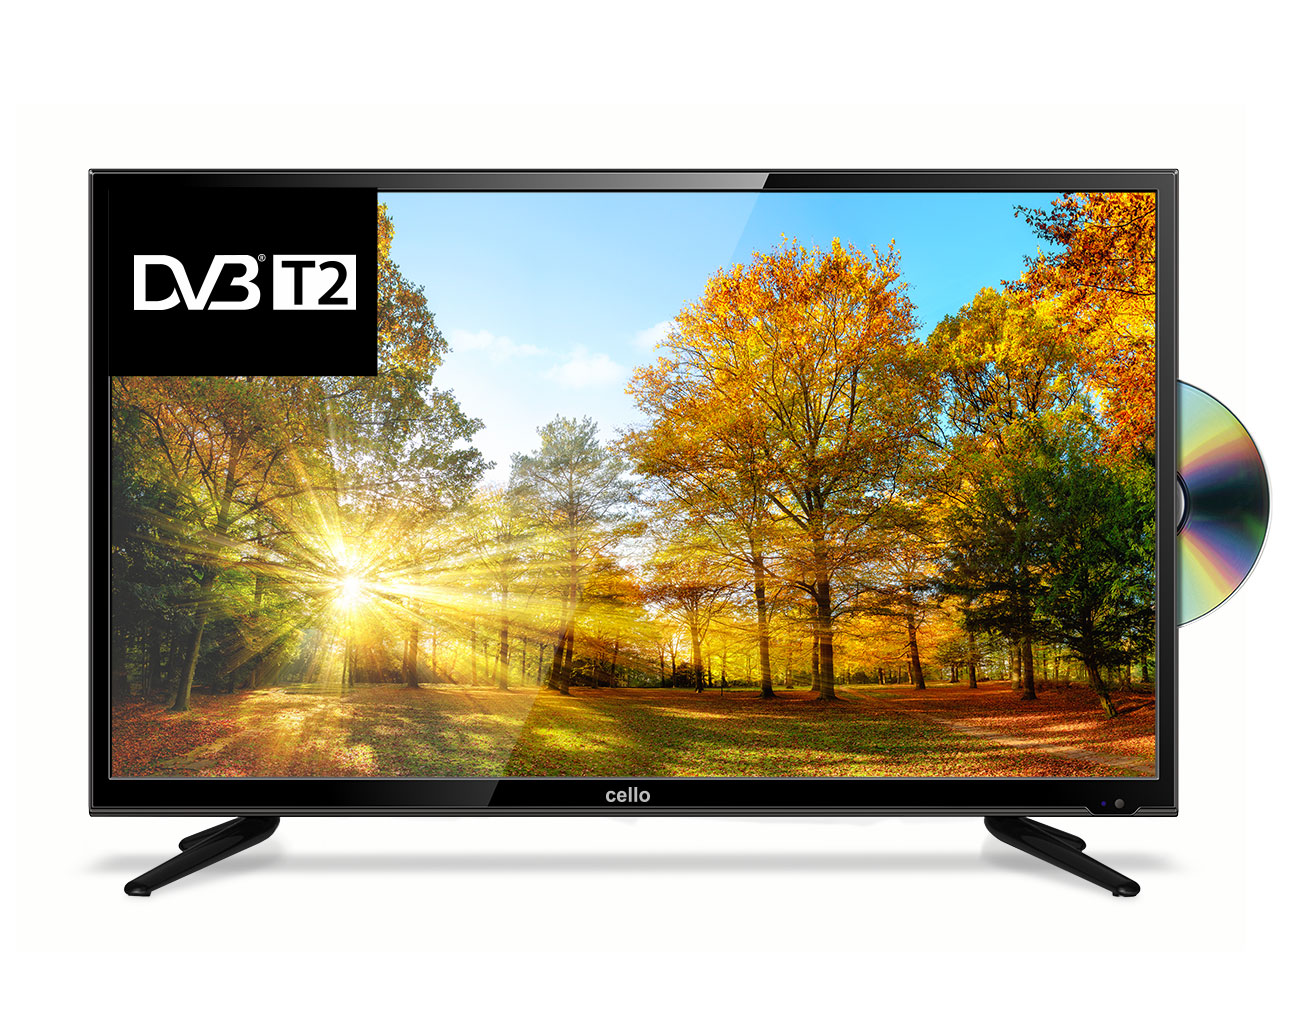 32 Hd Ready Freeview T2 Hd Tv With Built In Dvd Player Cello